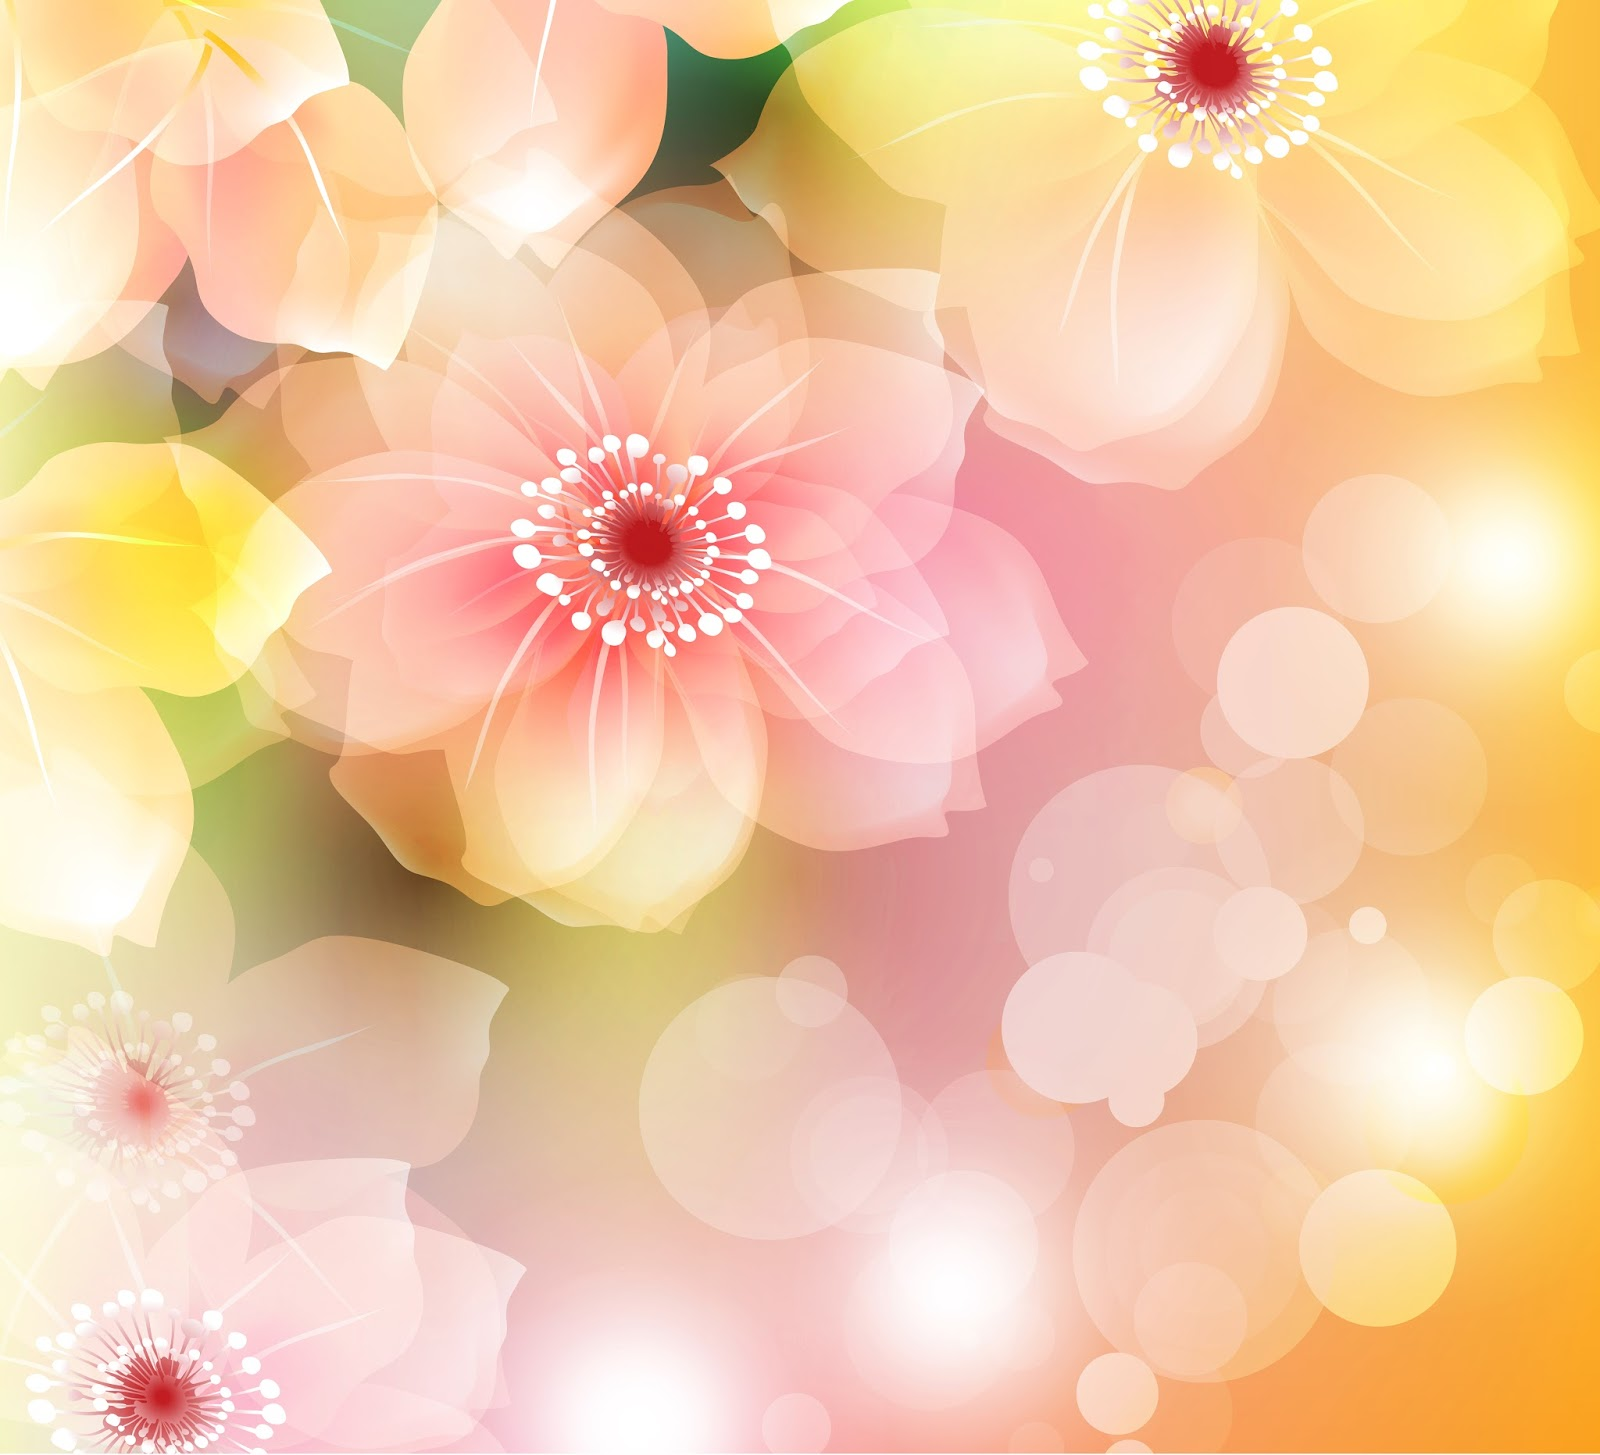 Floral Background Hd High Resolution Pixel Download - StudioPk